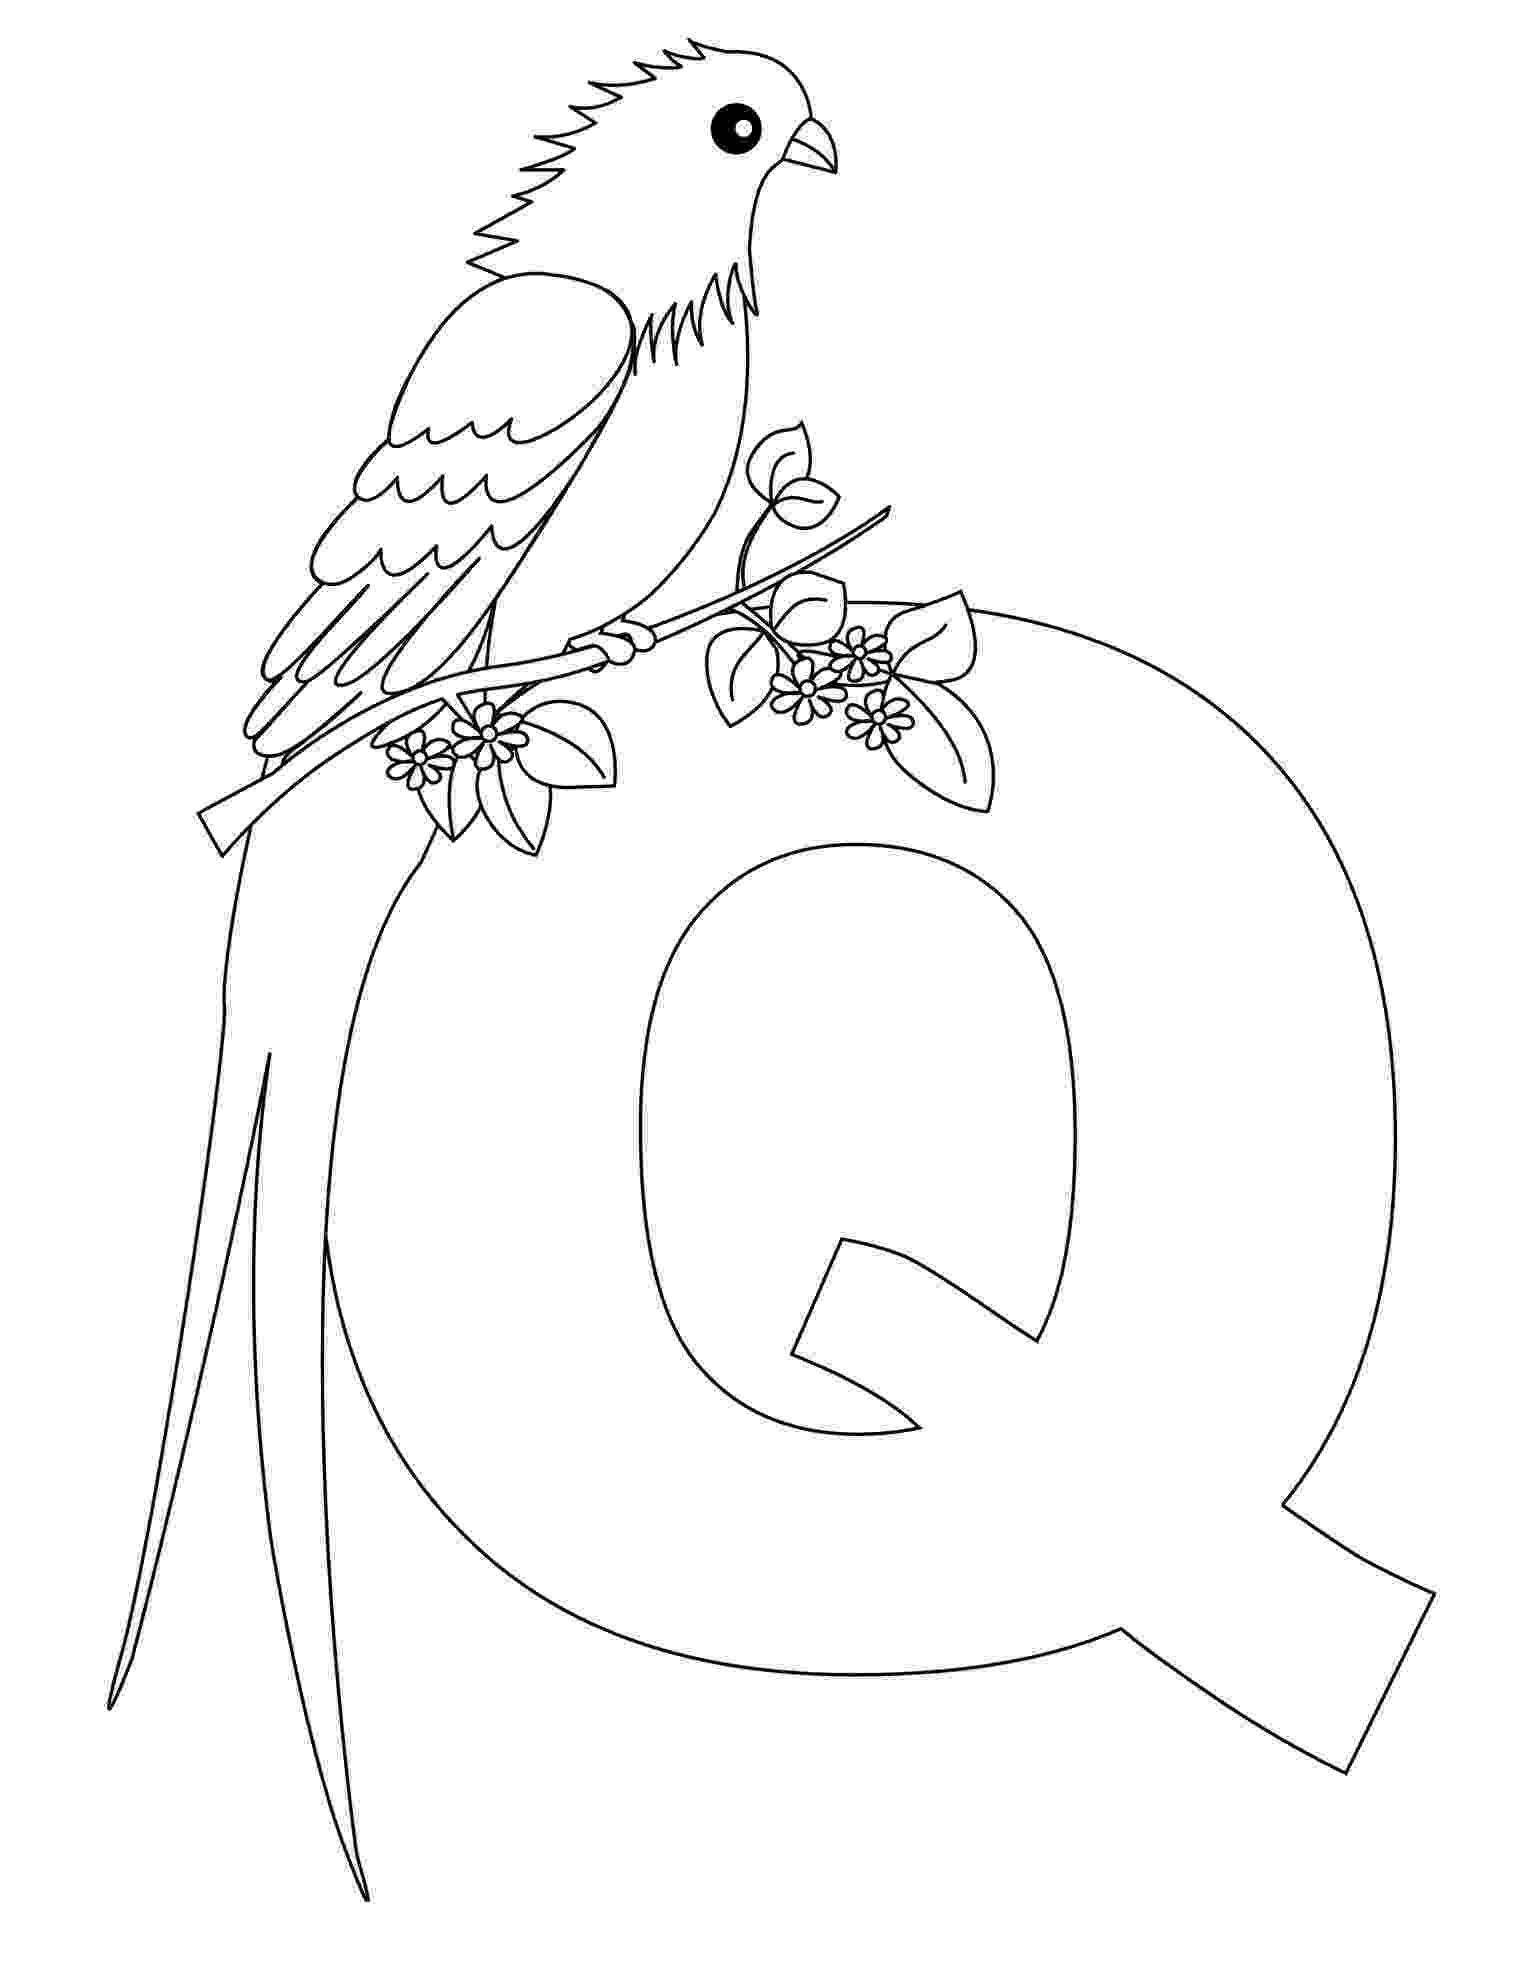 coloring pages of letters free printable alphabet coloring pages for kids best pages letters coloring of 1 3